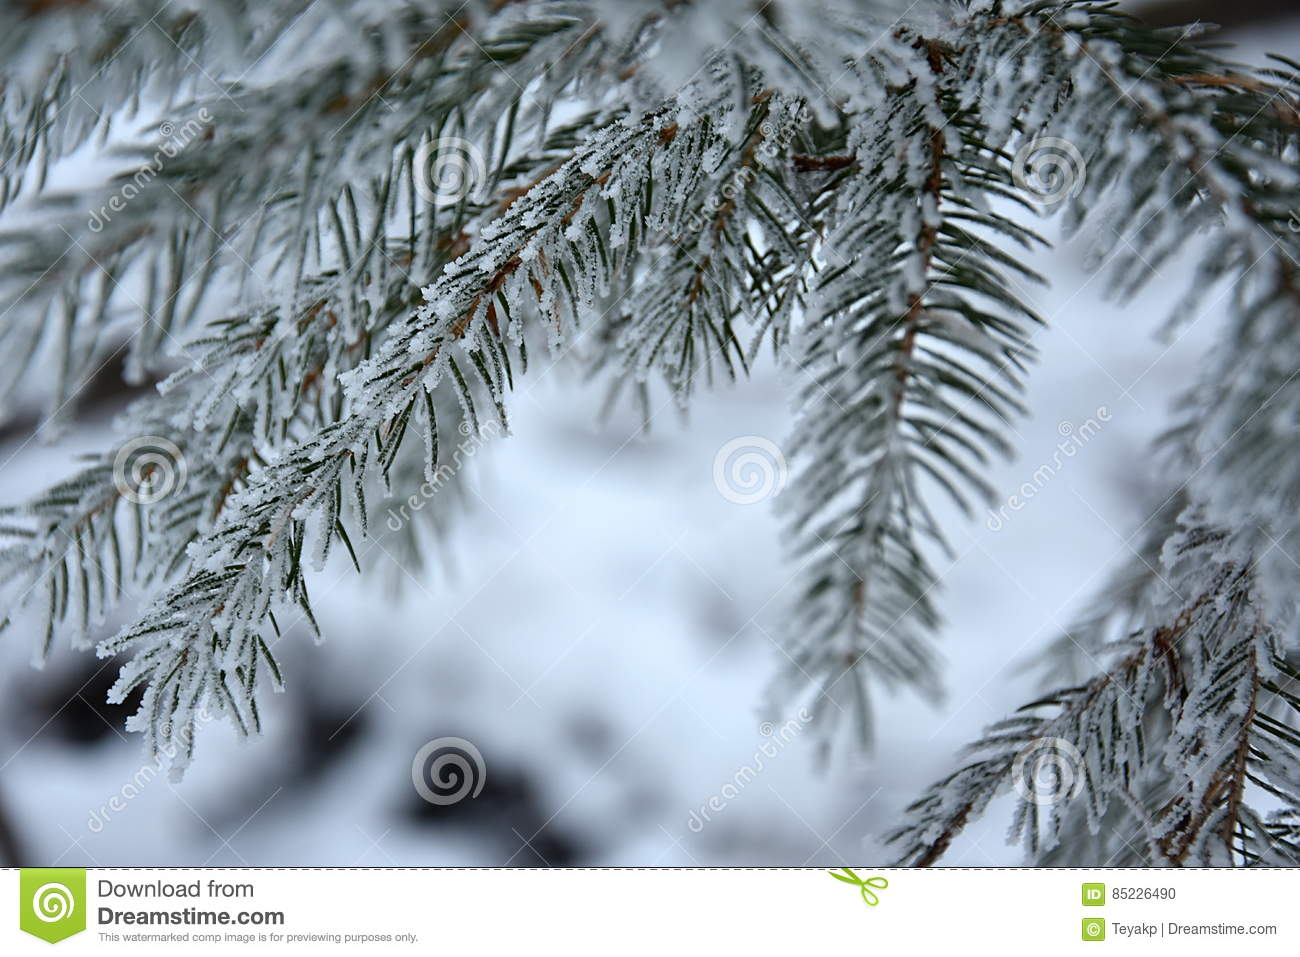 Snowy branches spruce, close up